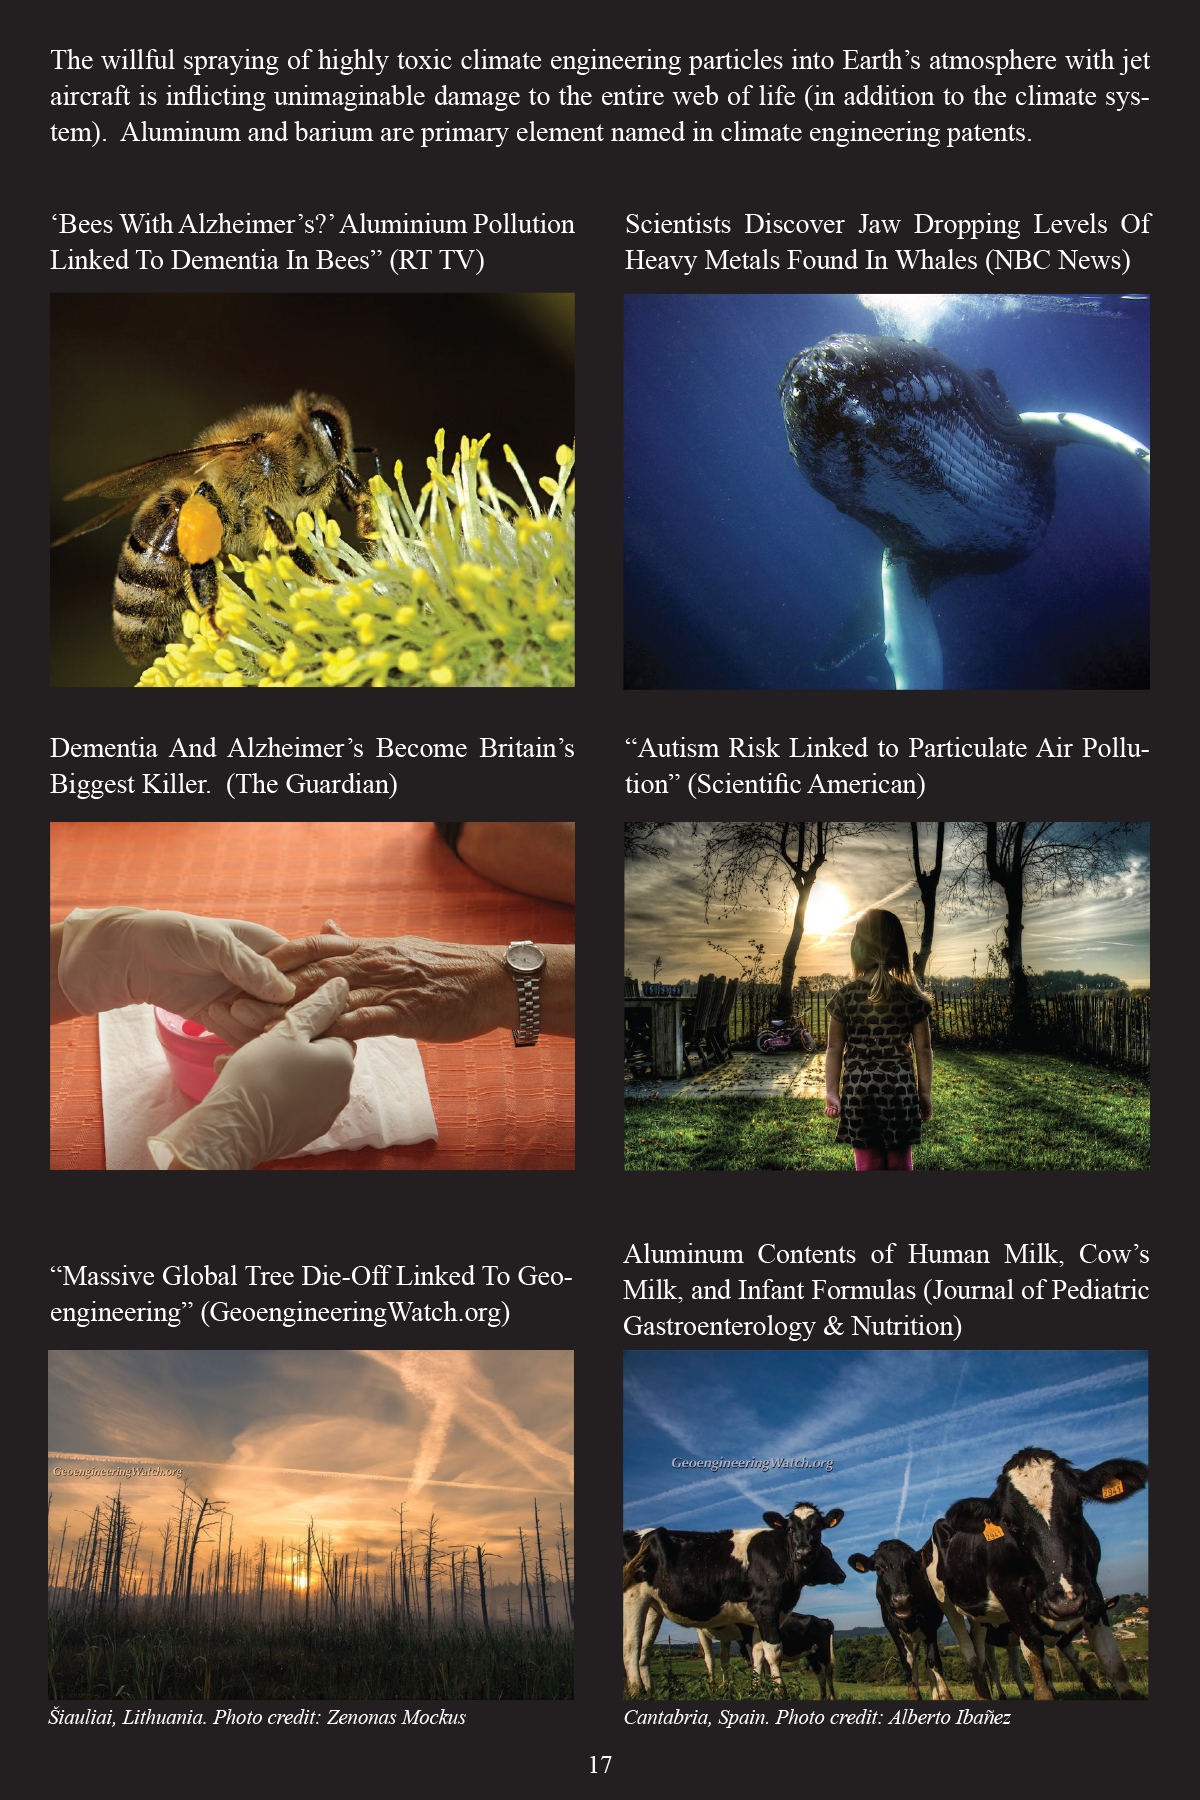 Climate Engineering Fact And Photo Summary - page 17